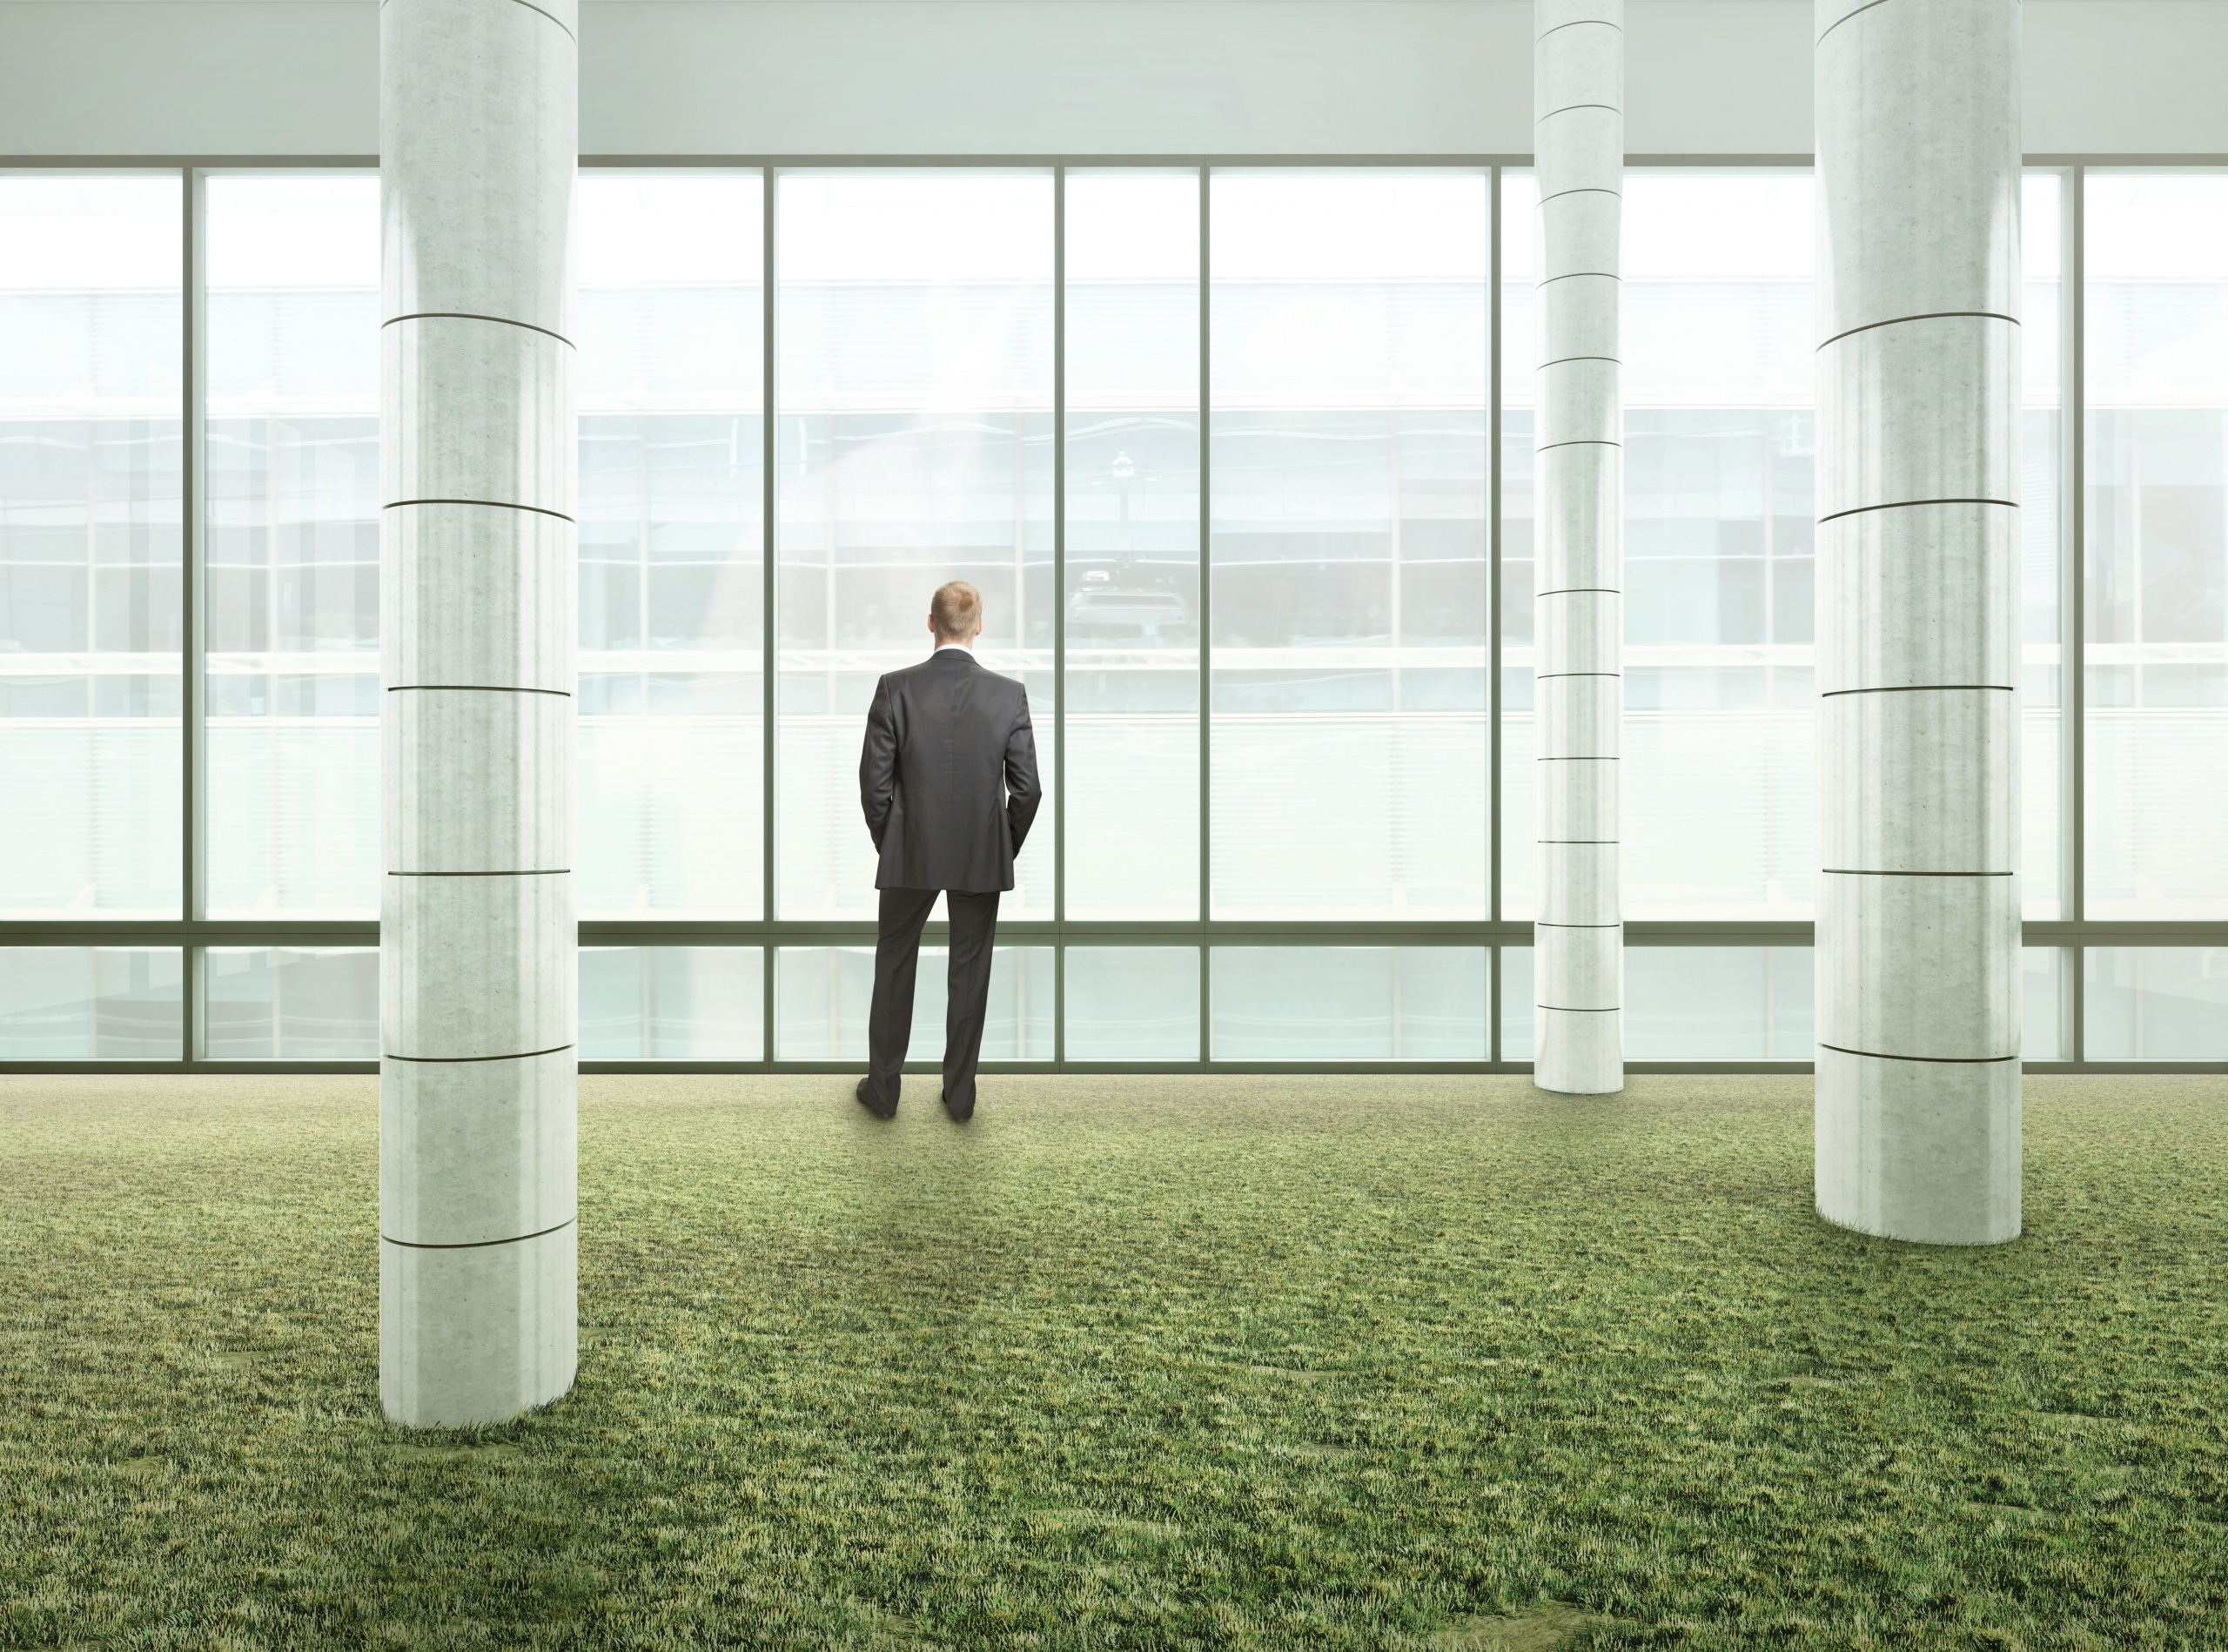 Man standing in front of windows in an eco office space.